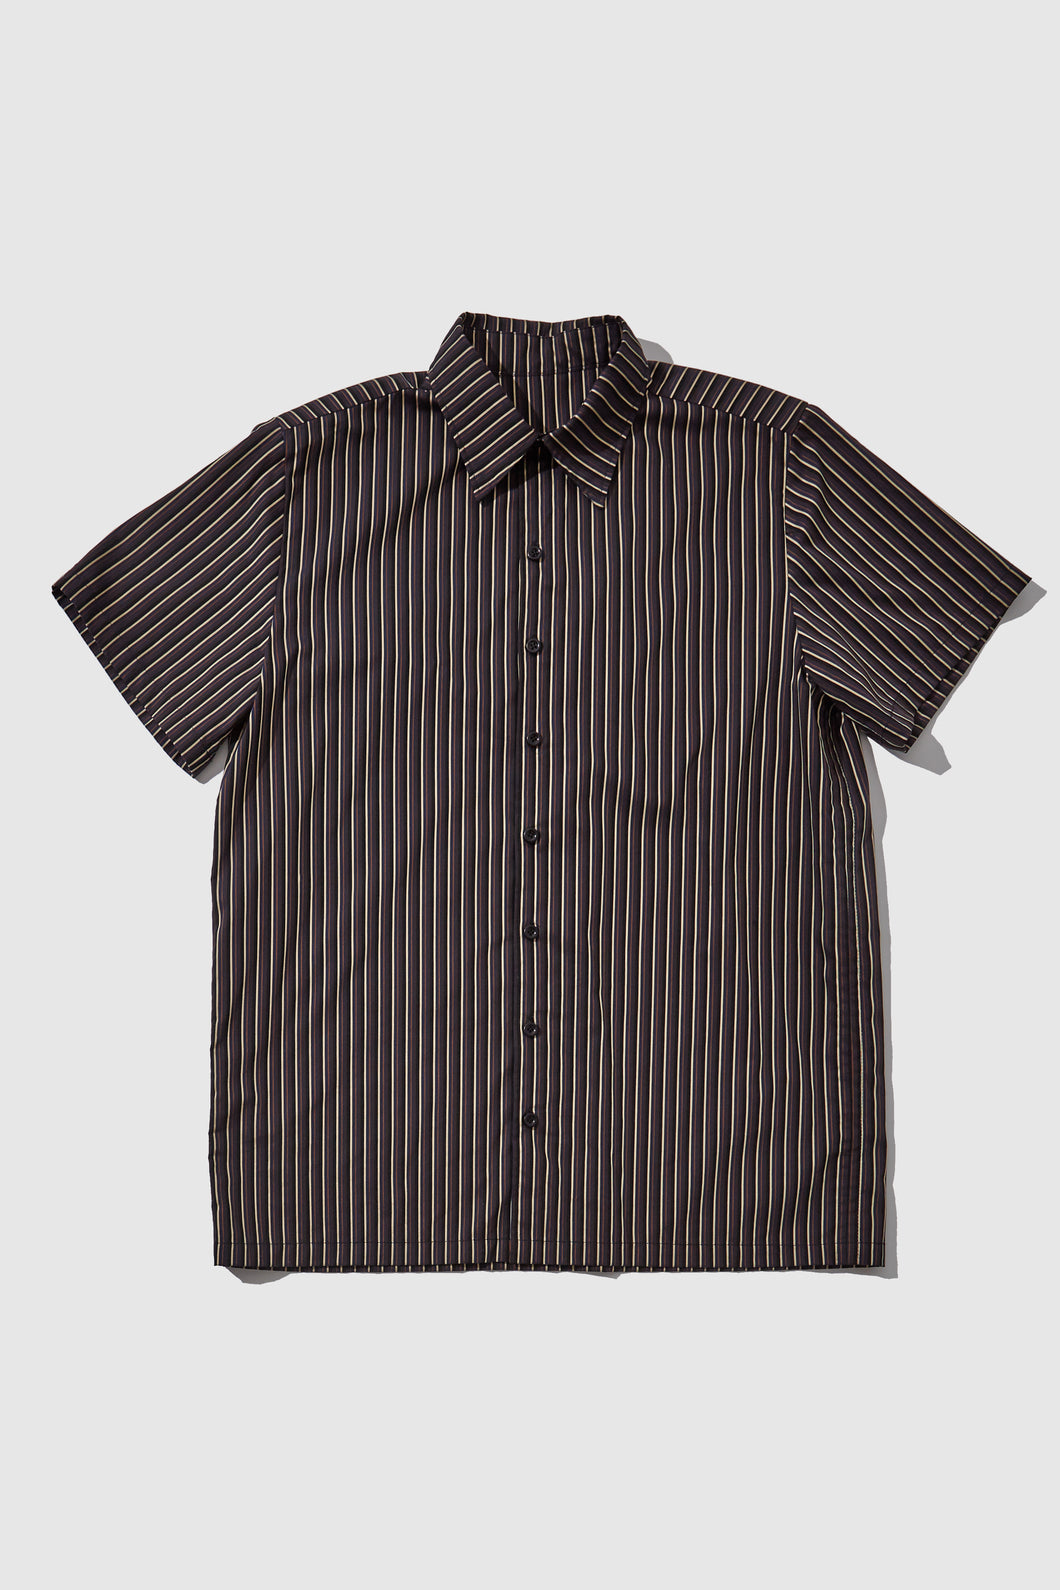 TH.02 Short Sleeve Shirt